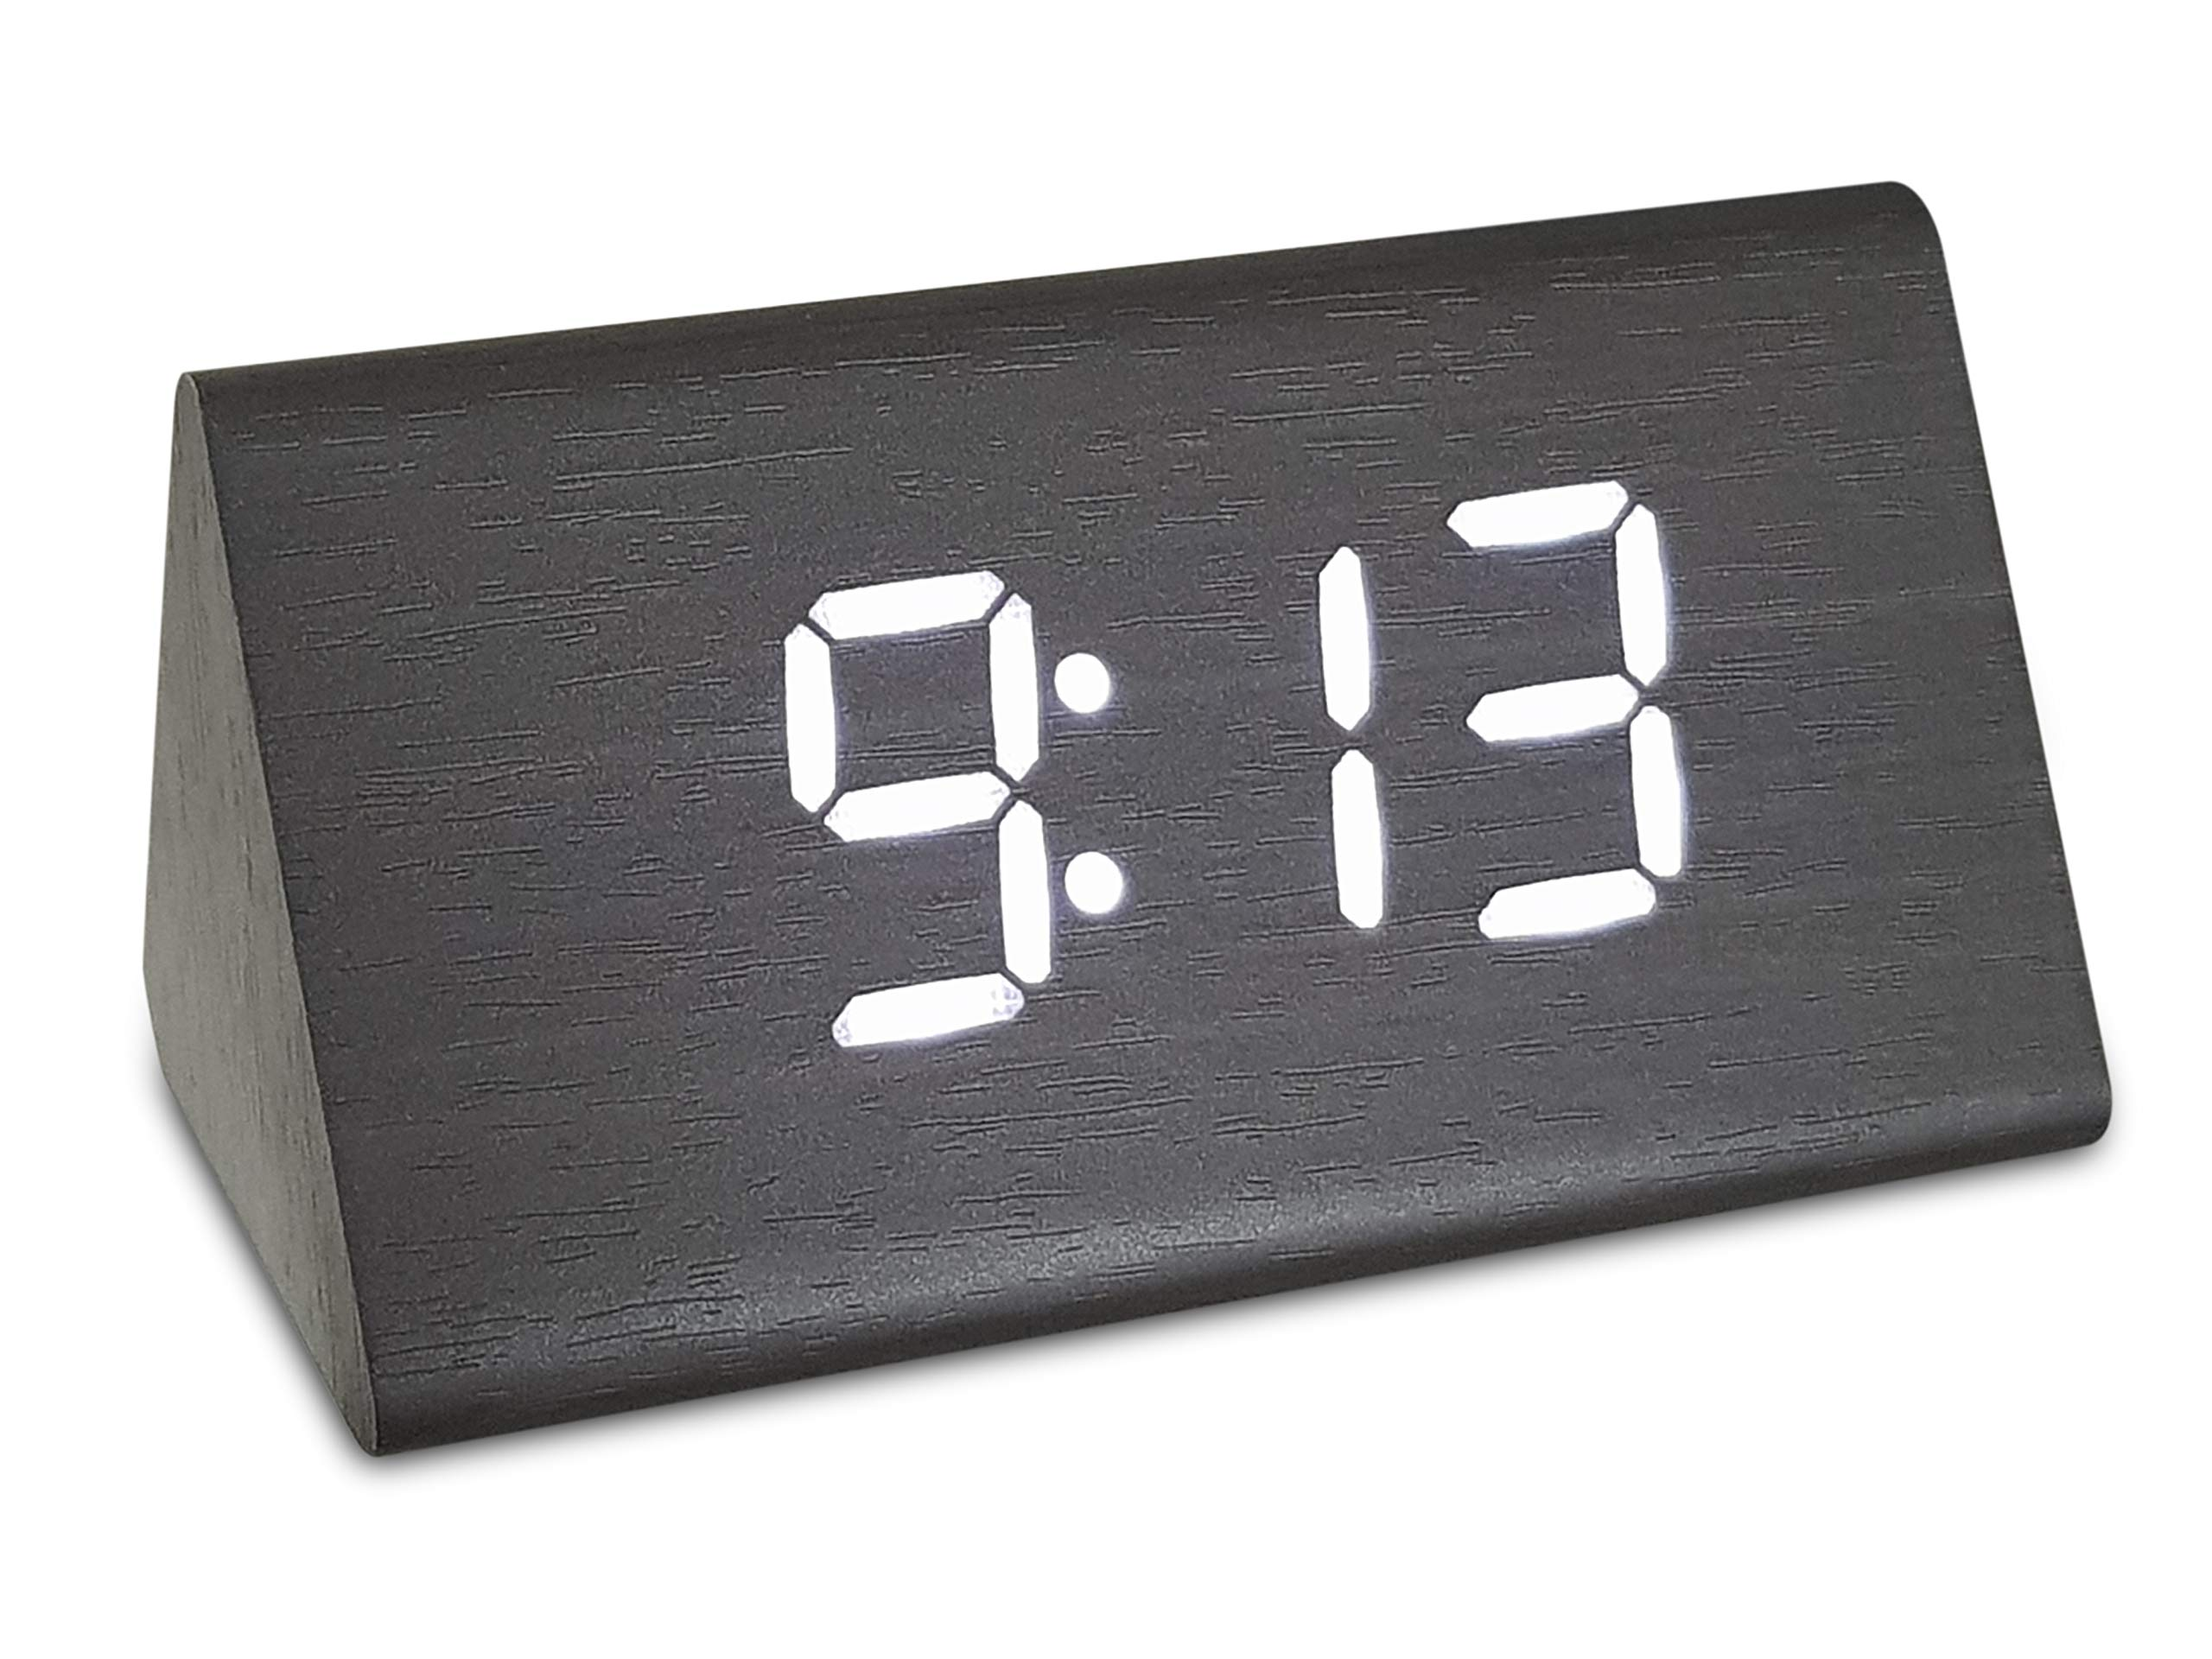 Loud Alarm ON//Off Switch No Bells Digital Travel Alarm Clock Simple Basic Operation 2 AAA Battery Powered Snooze No Whistles White Small and Light